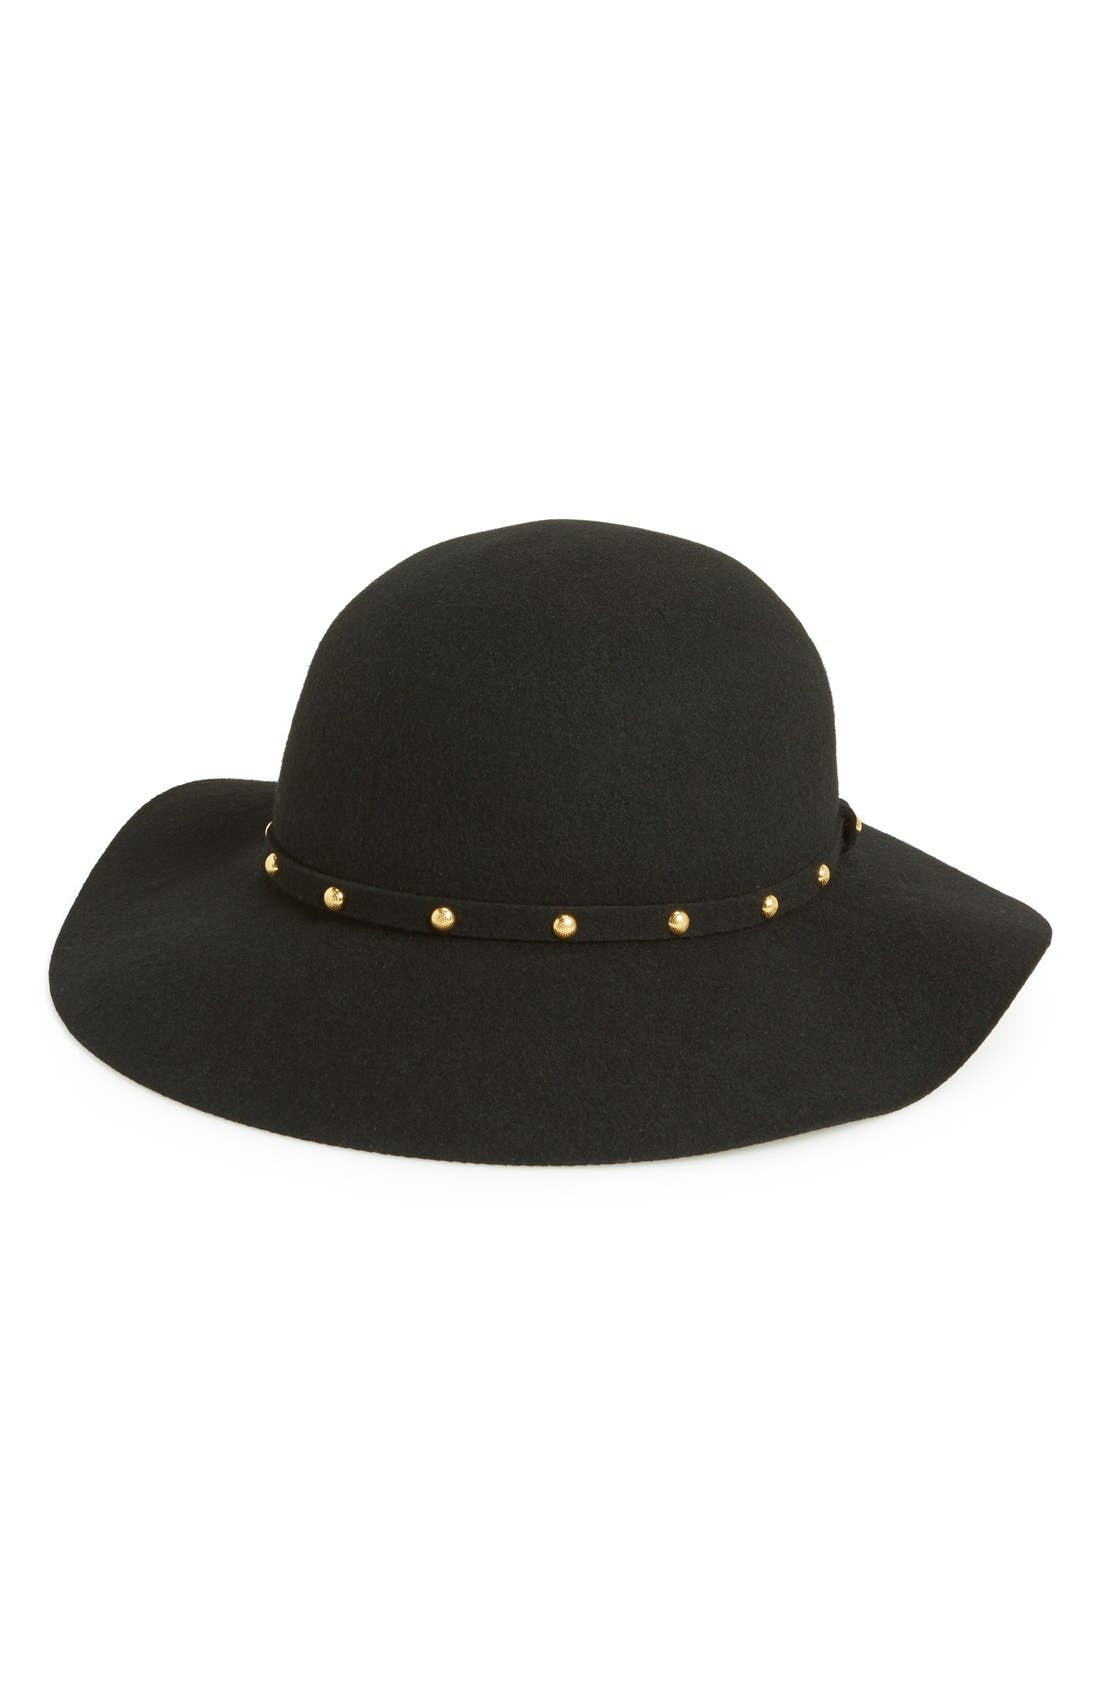 Main Image - San Diego Hat Floppy Wool Felt Hat with Studded Band